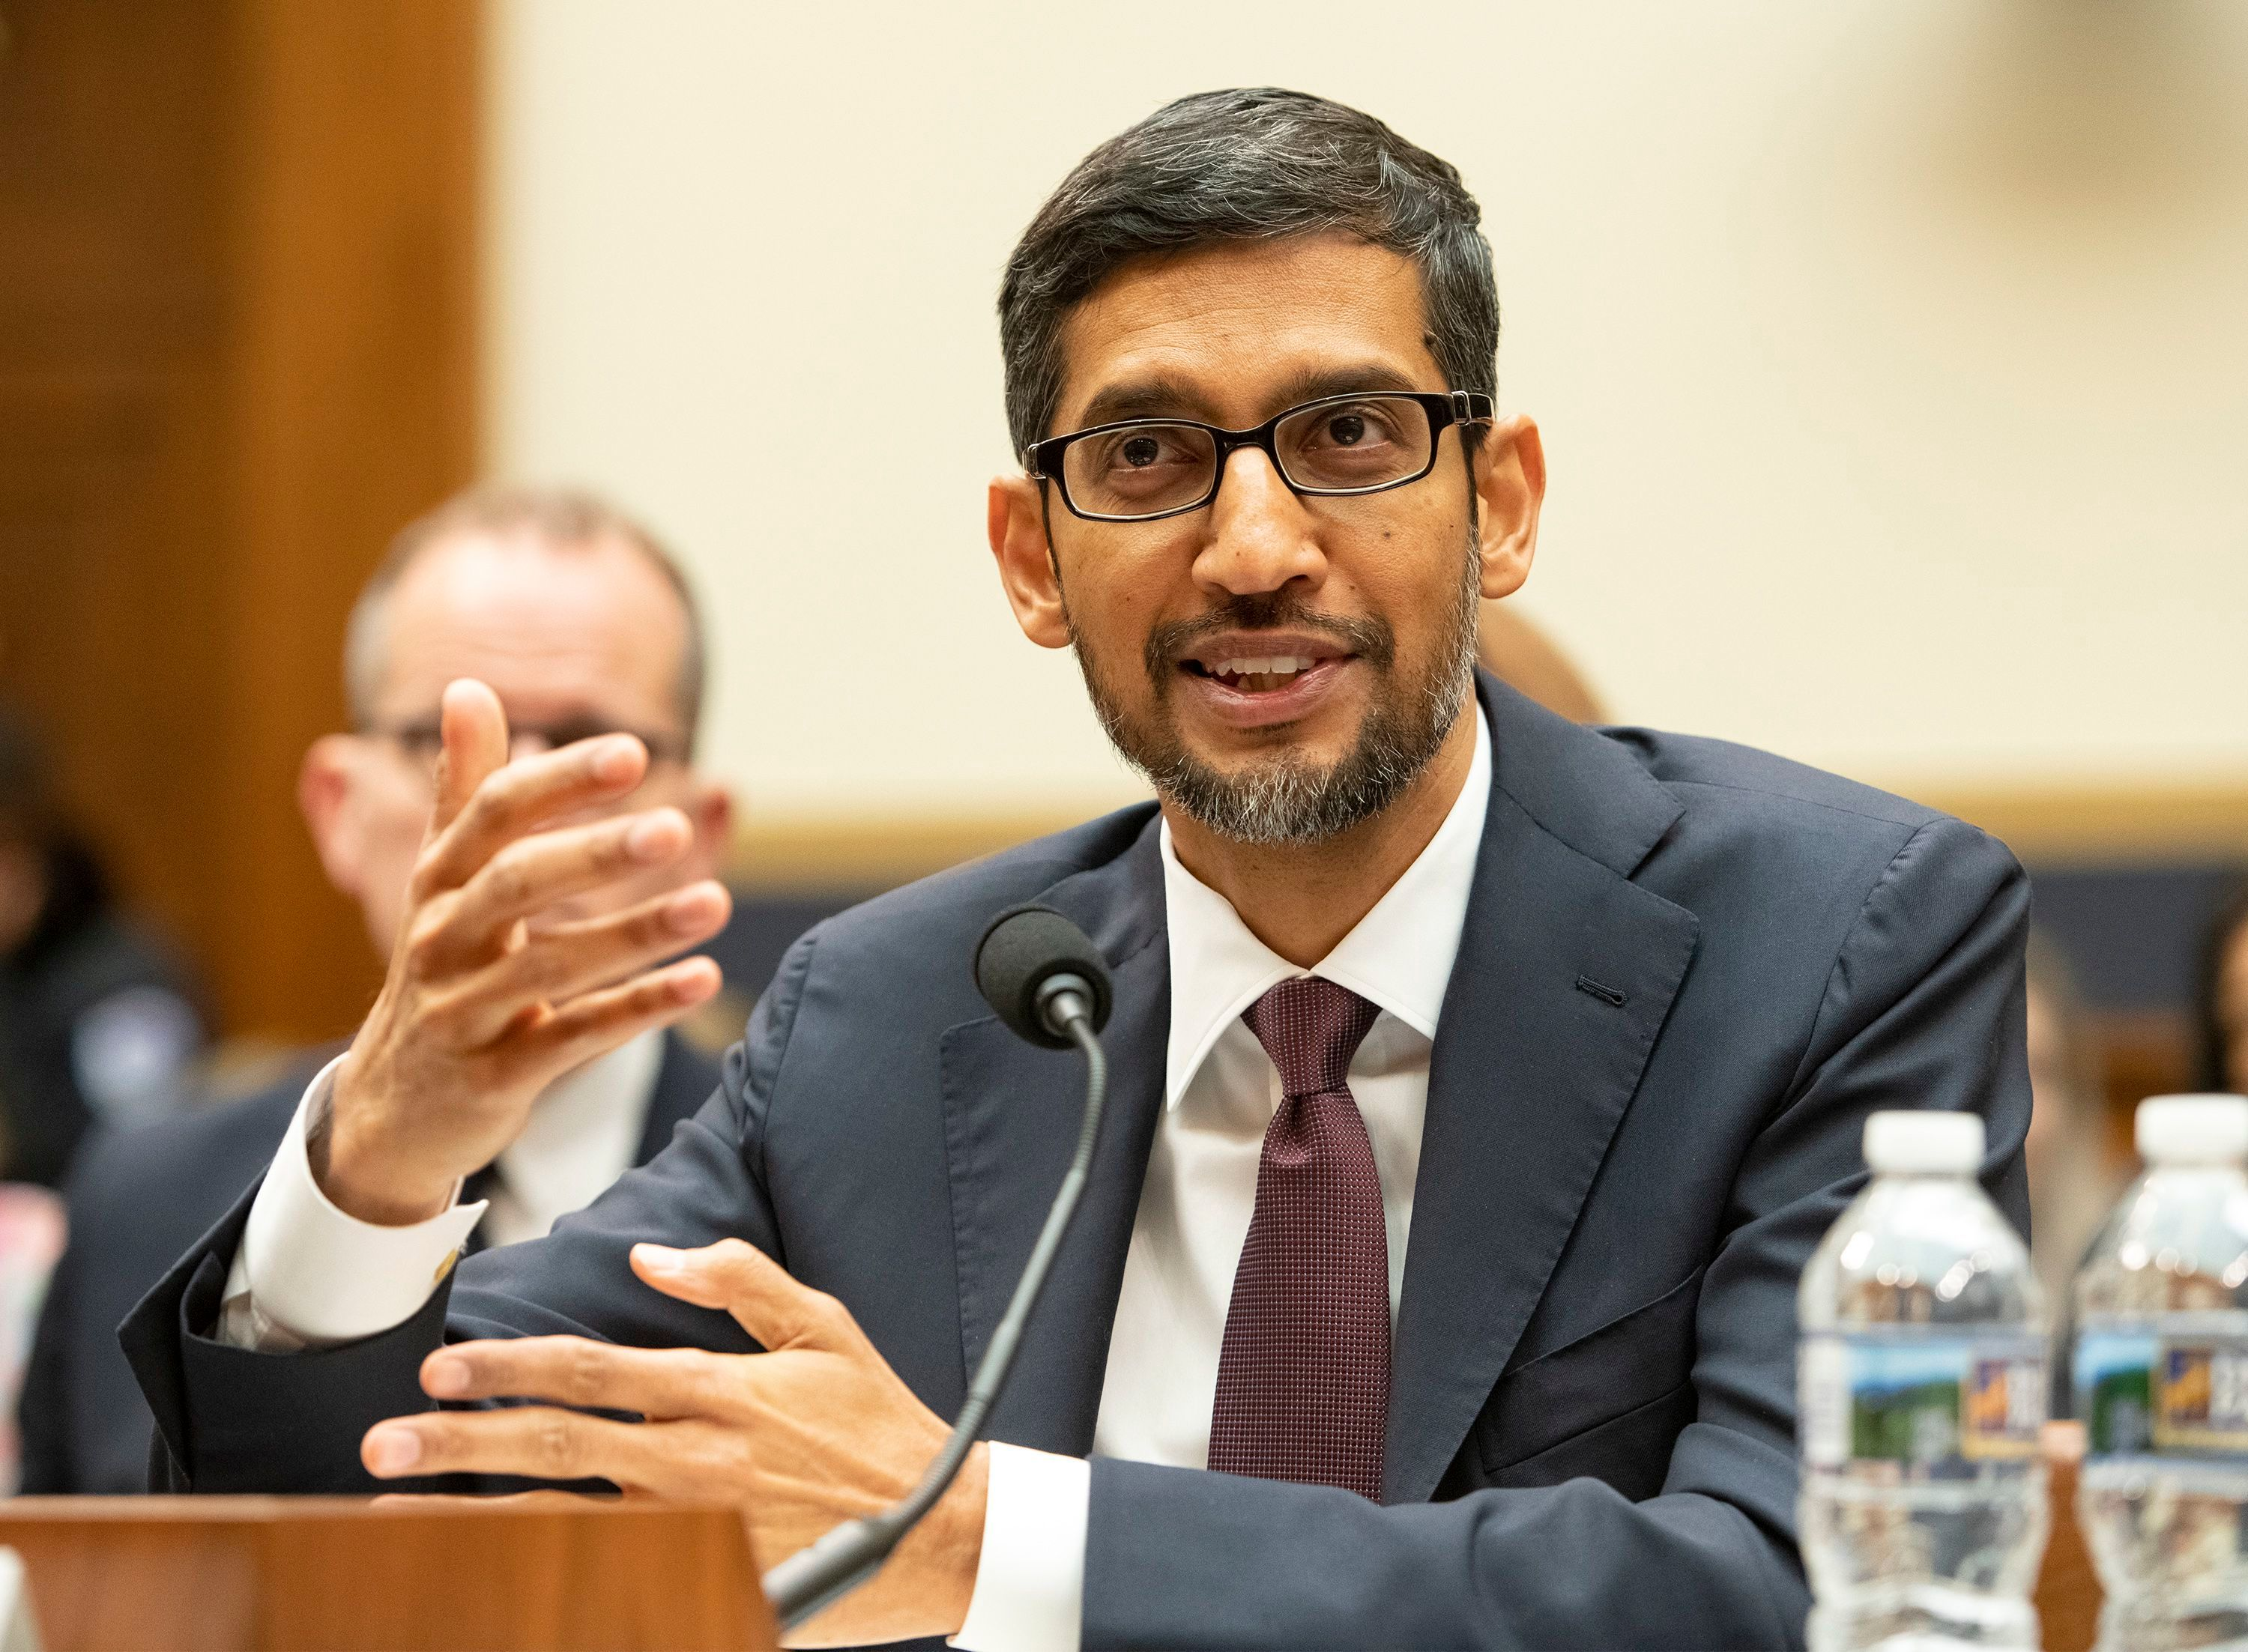 """RESTRICTION: No New York or New Jersey Newspapers or newspapers within a 75 mile radius of New York CityMandatory Credit: Photo by REX/Shutterstock (10031705v) Sundar Pichai, Chief Executive Officer of Google, testifies before the United States House Committee on the Judiciary on """"Transparency & Accountability: Examining Google and its Data Collection, Use and Filtering Practices"""" on Capitol Hill Google CEO Sundar Pichai testifies before Congress, Washington DC, USA - 11 Dec 2018"""